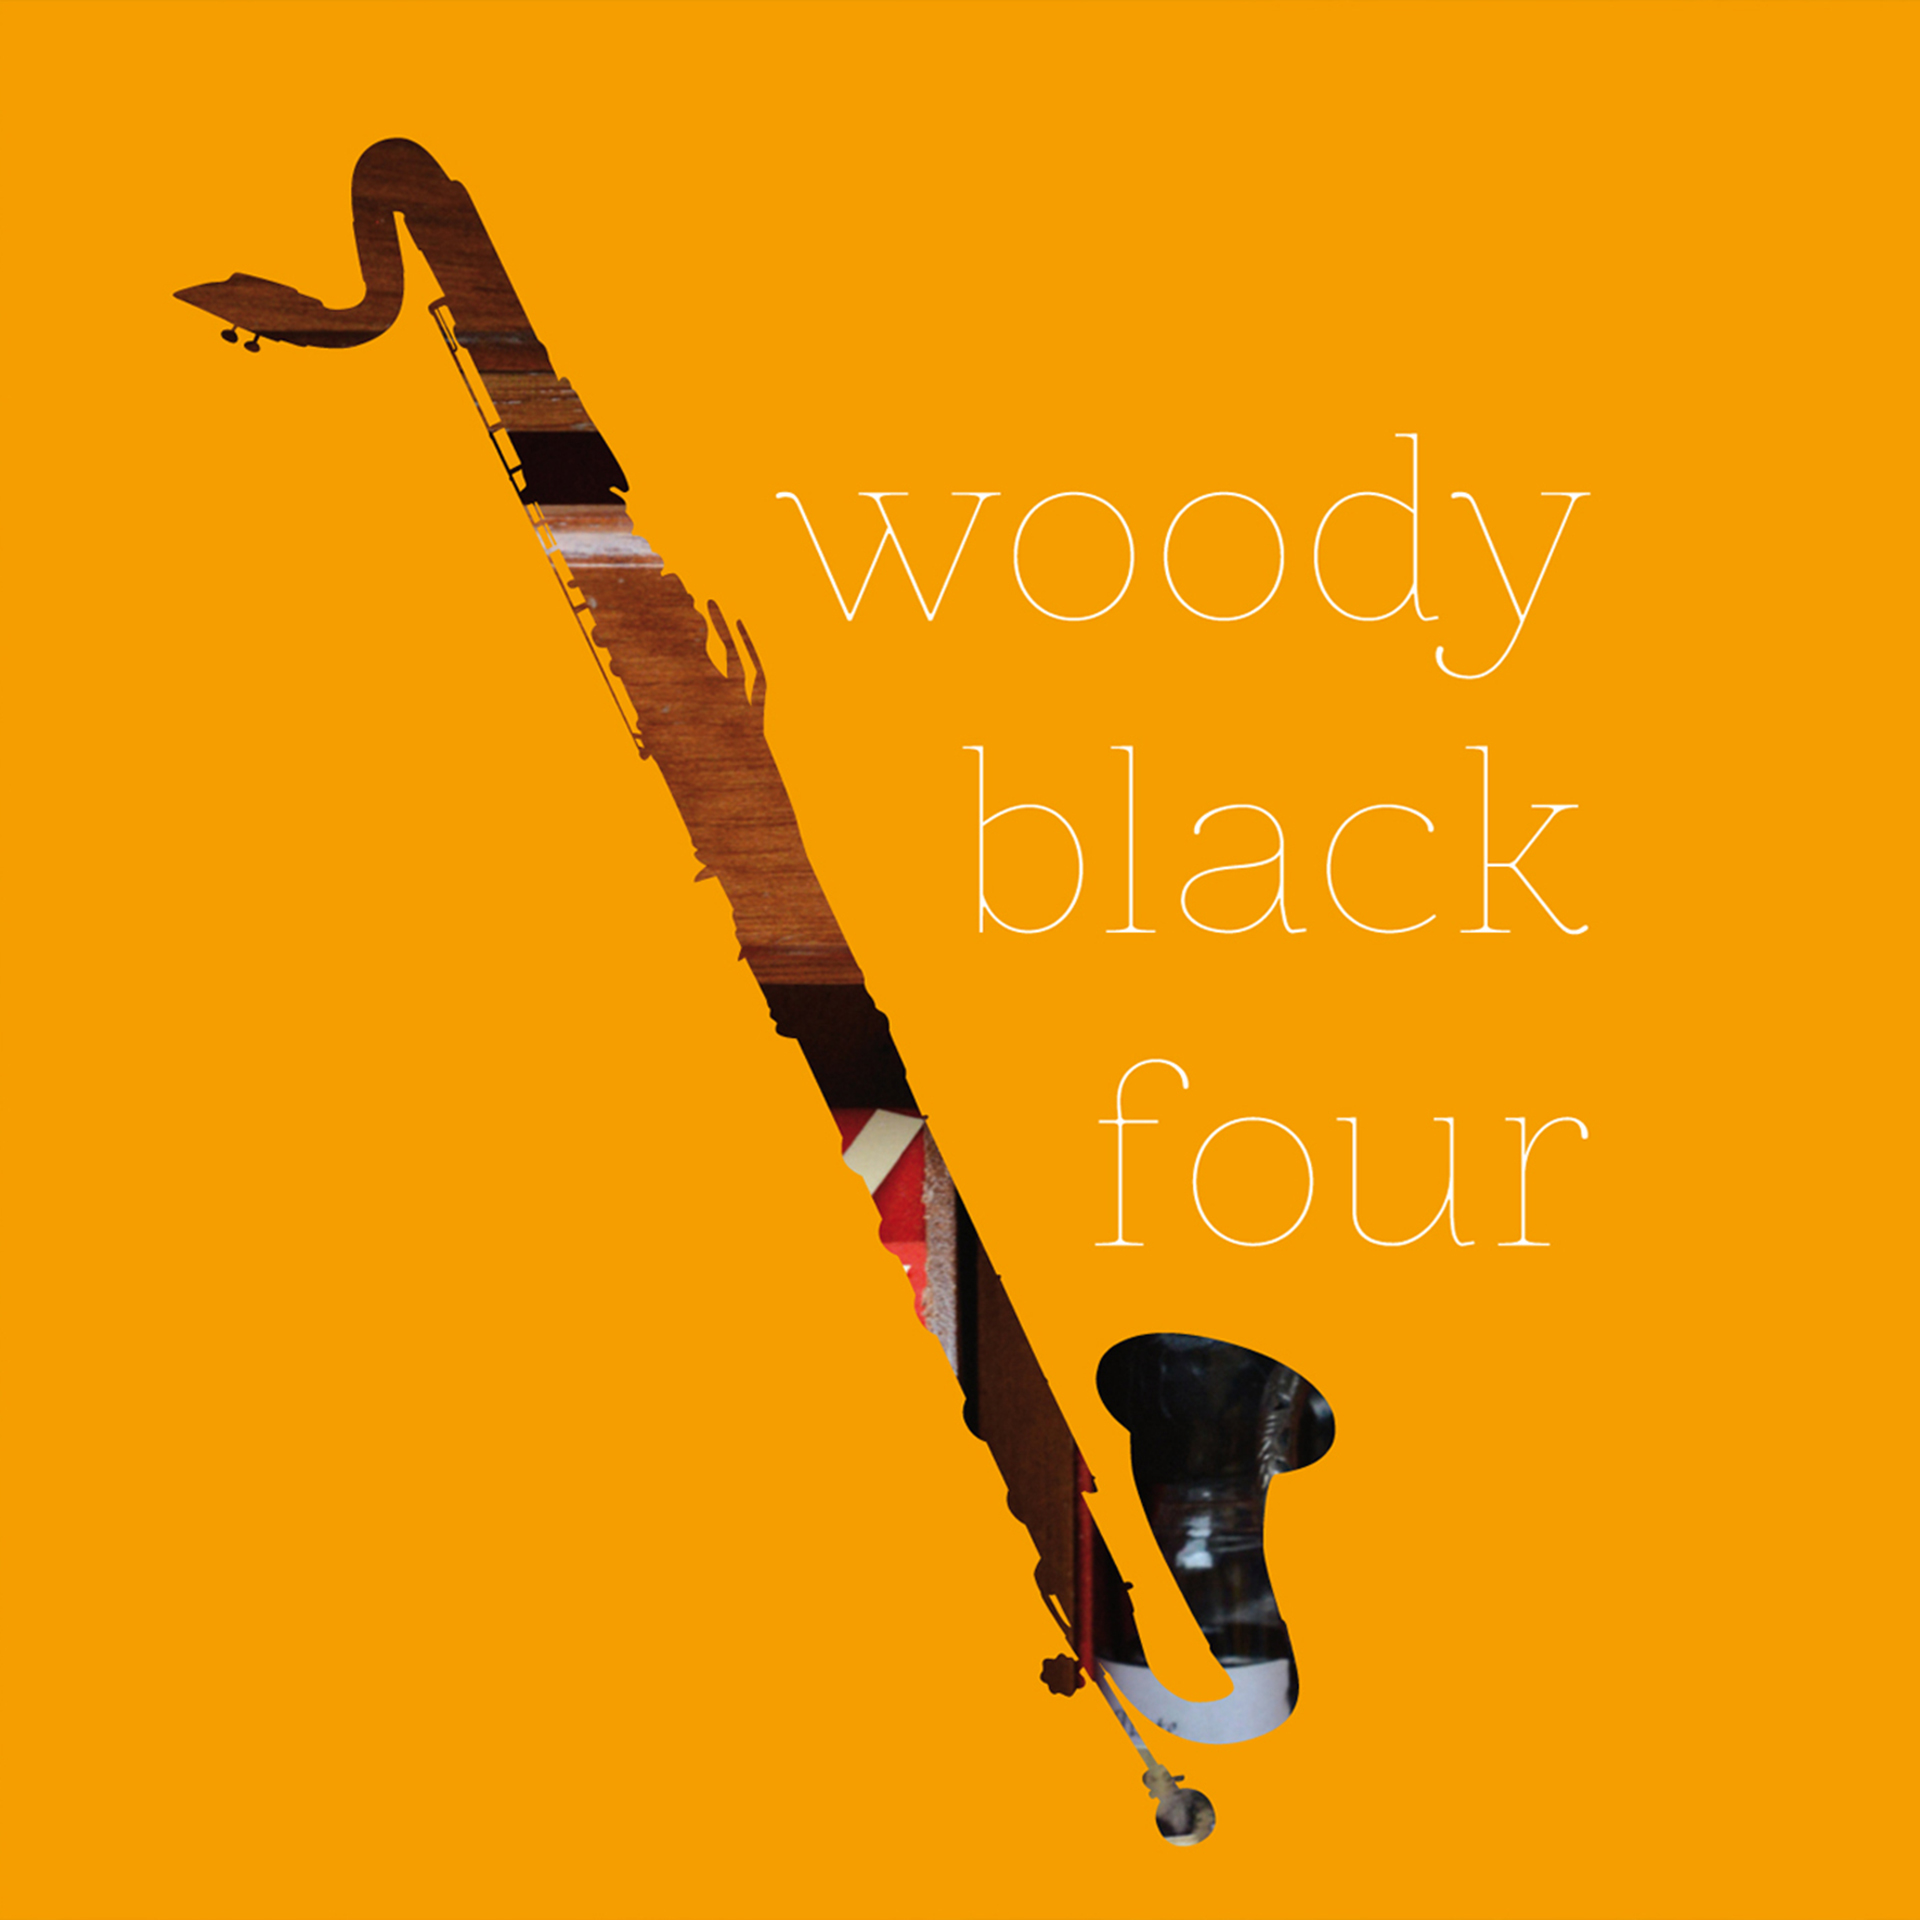 Woody-Black-Four